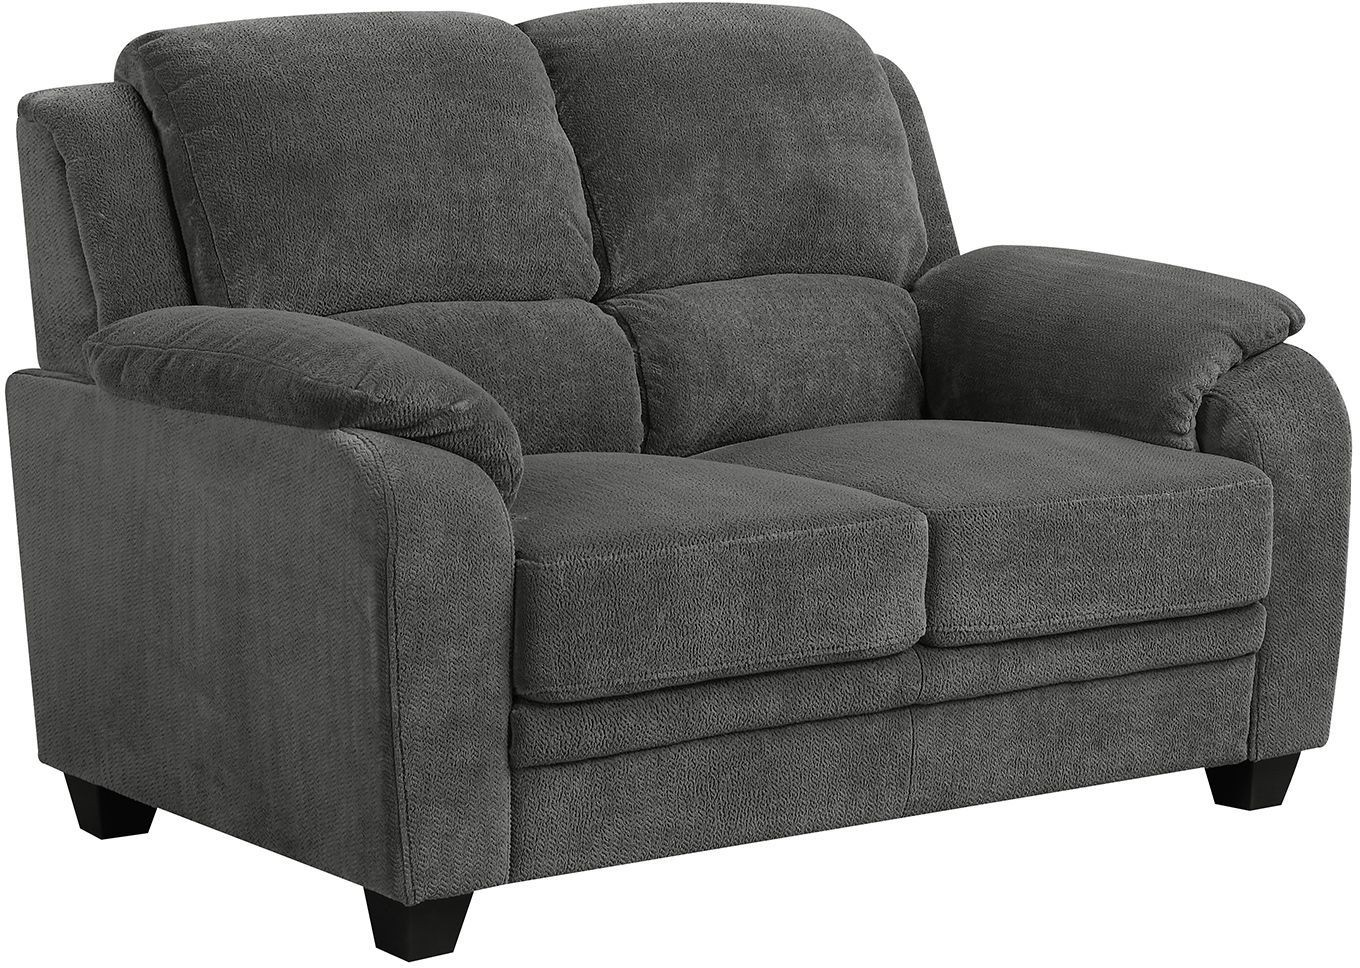 Northend Charcoal Loveseat 506242 Coaster Furniture